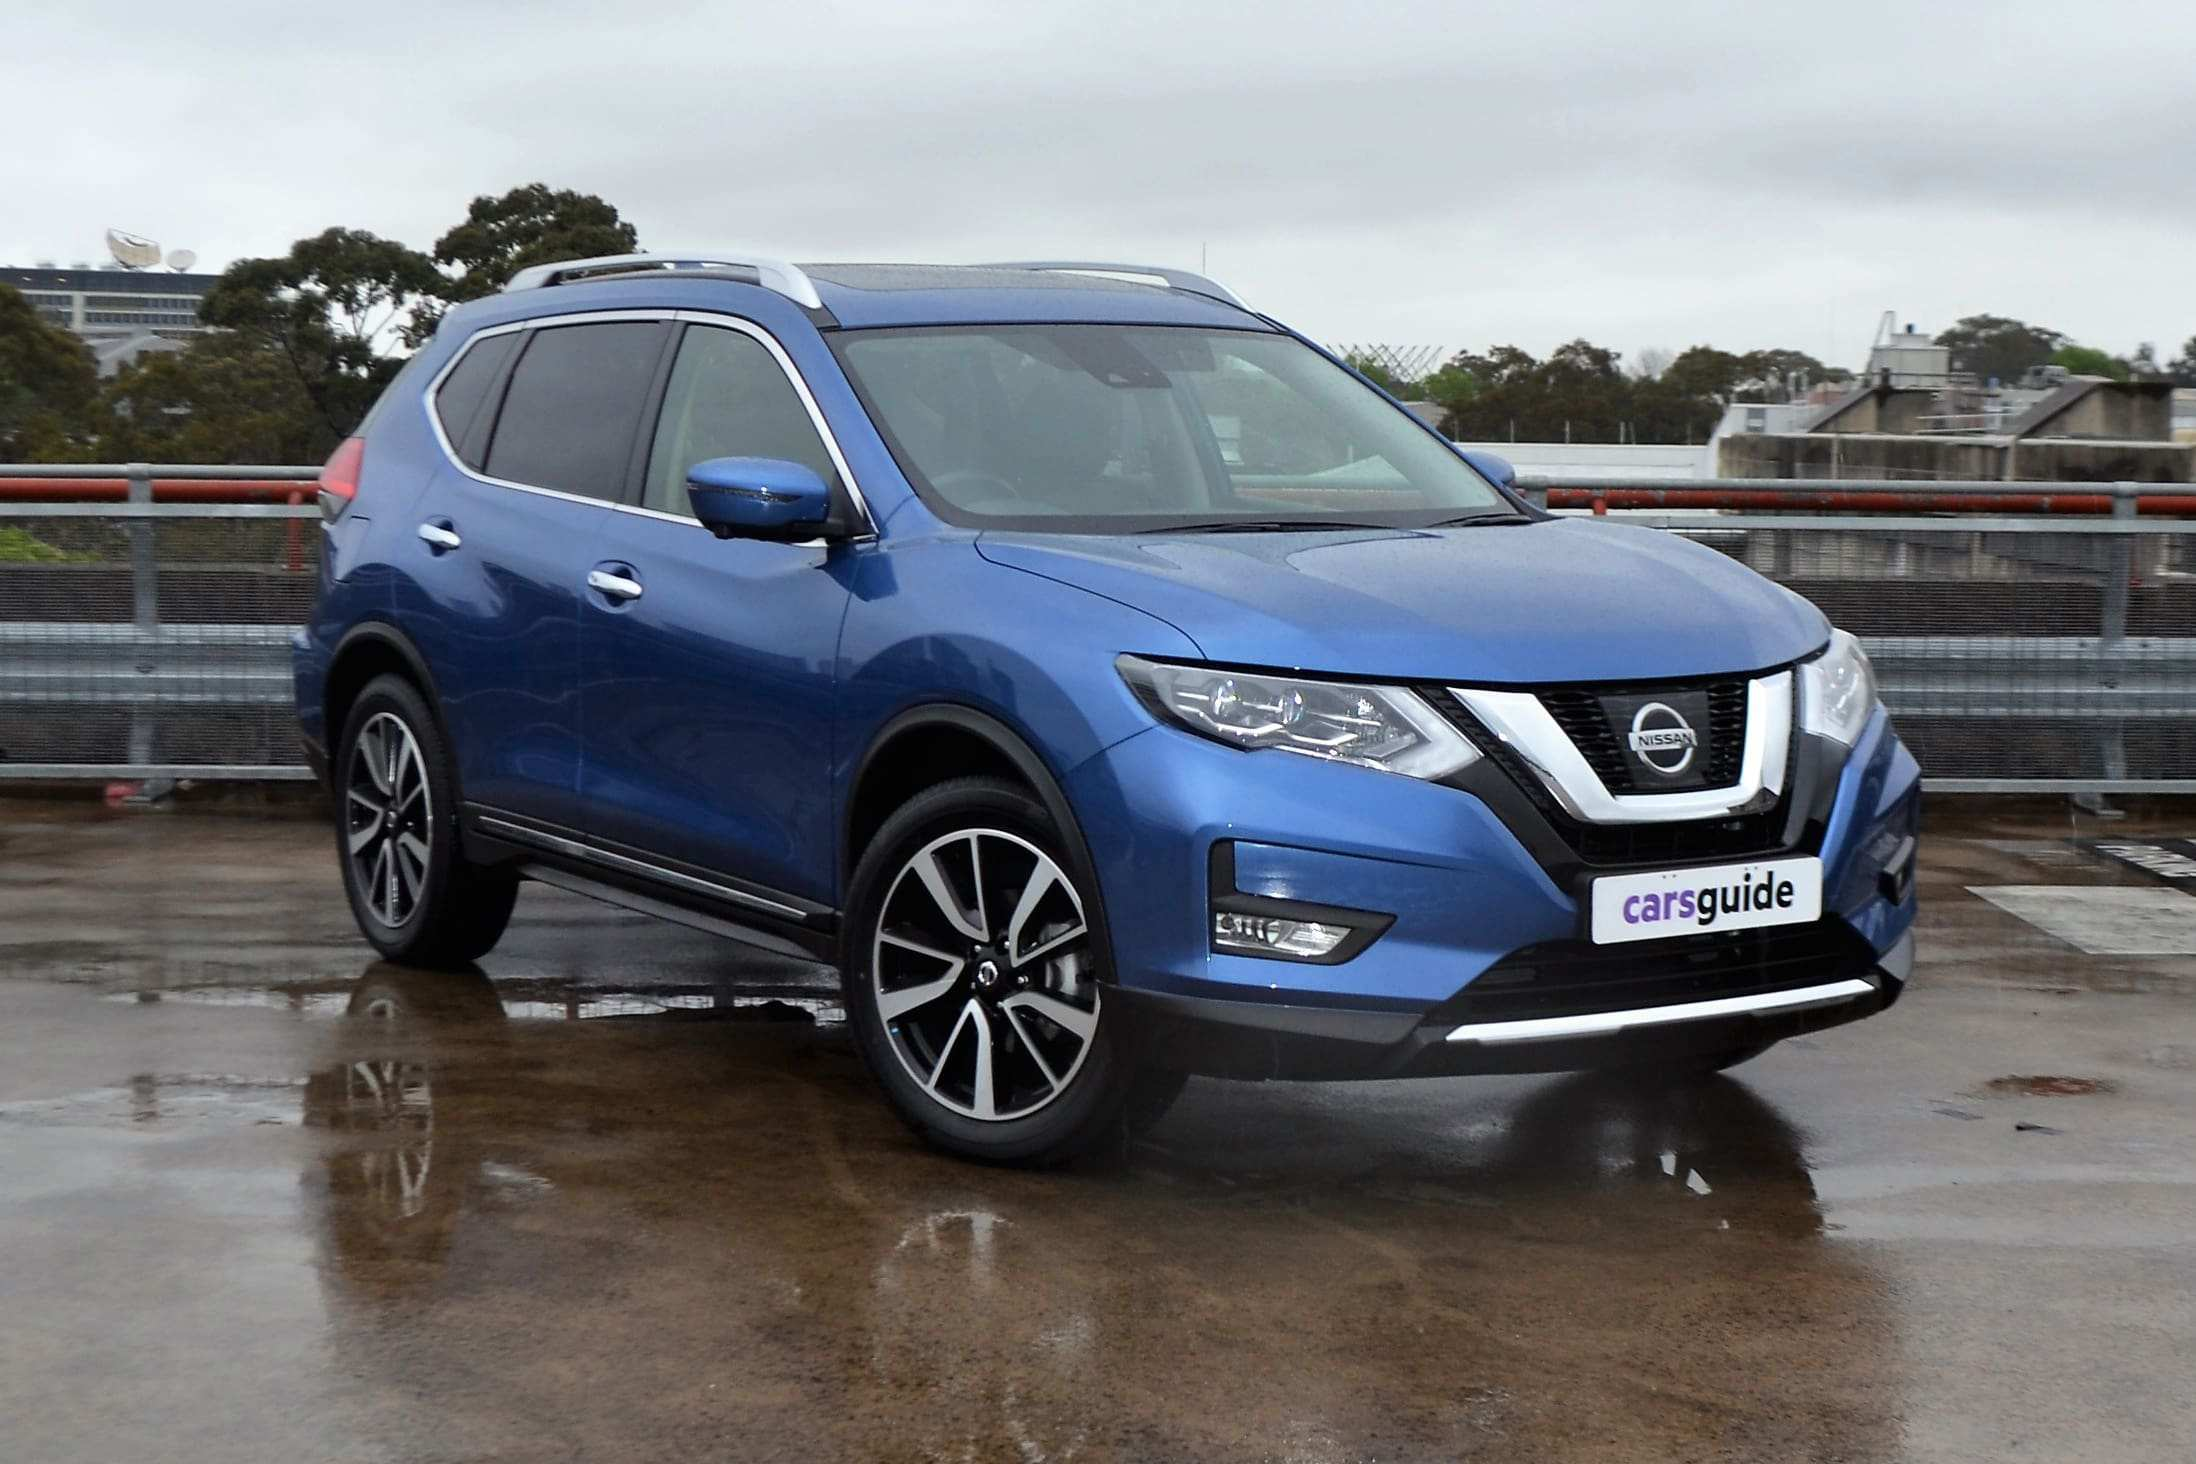 77 Great New Nissan 2019 Colors Overview And Price Concept for New Nissan 2019 Colors Overview And Price